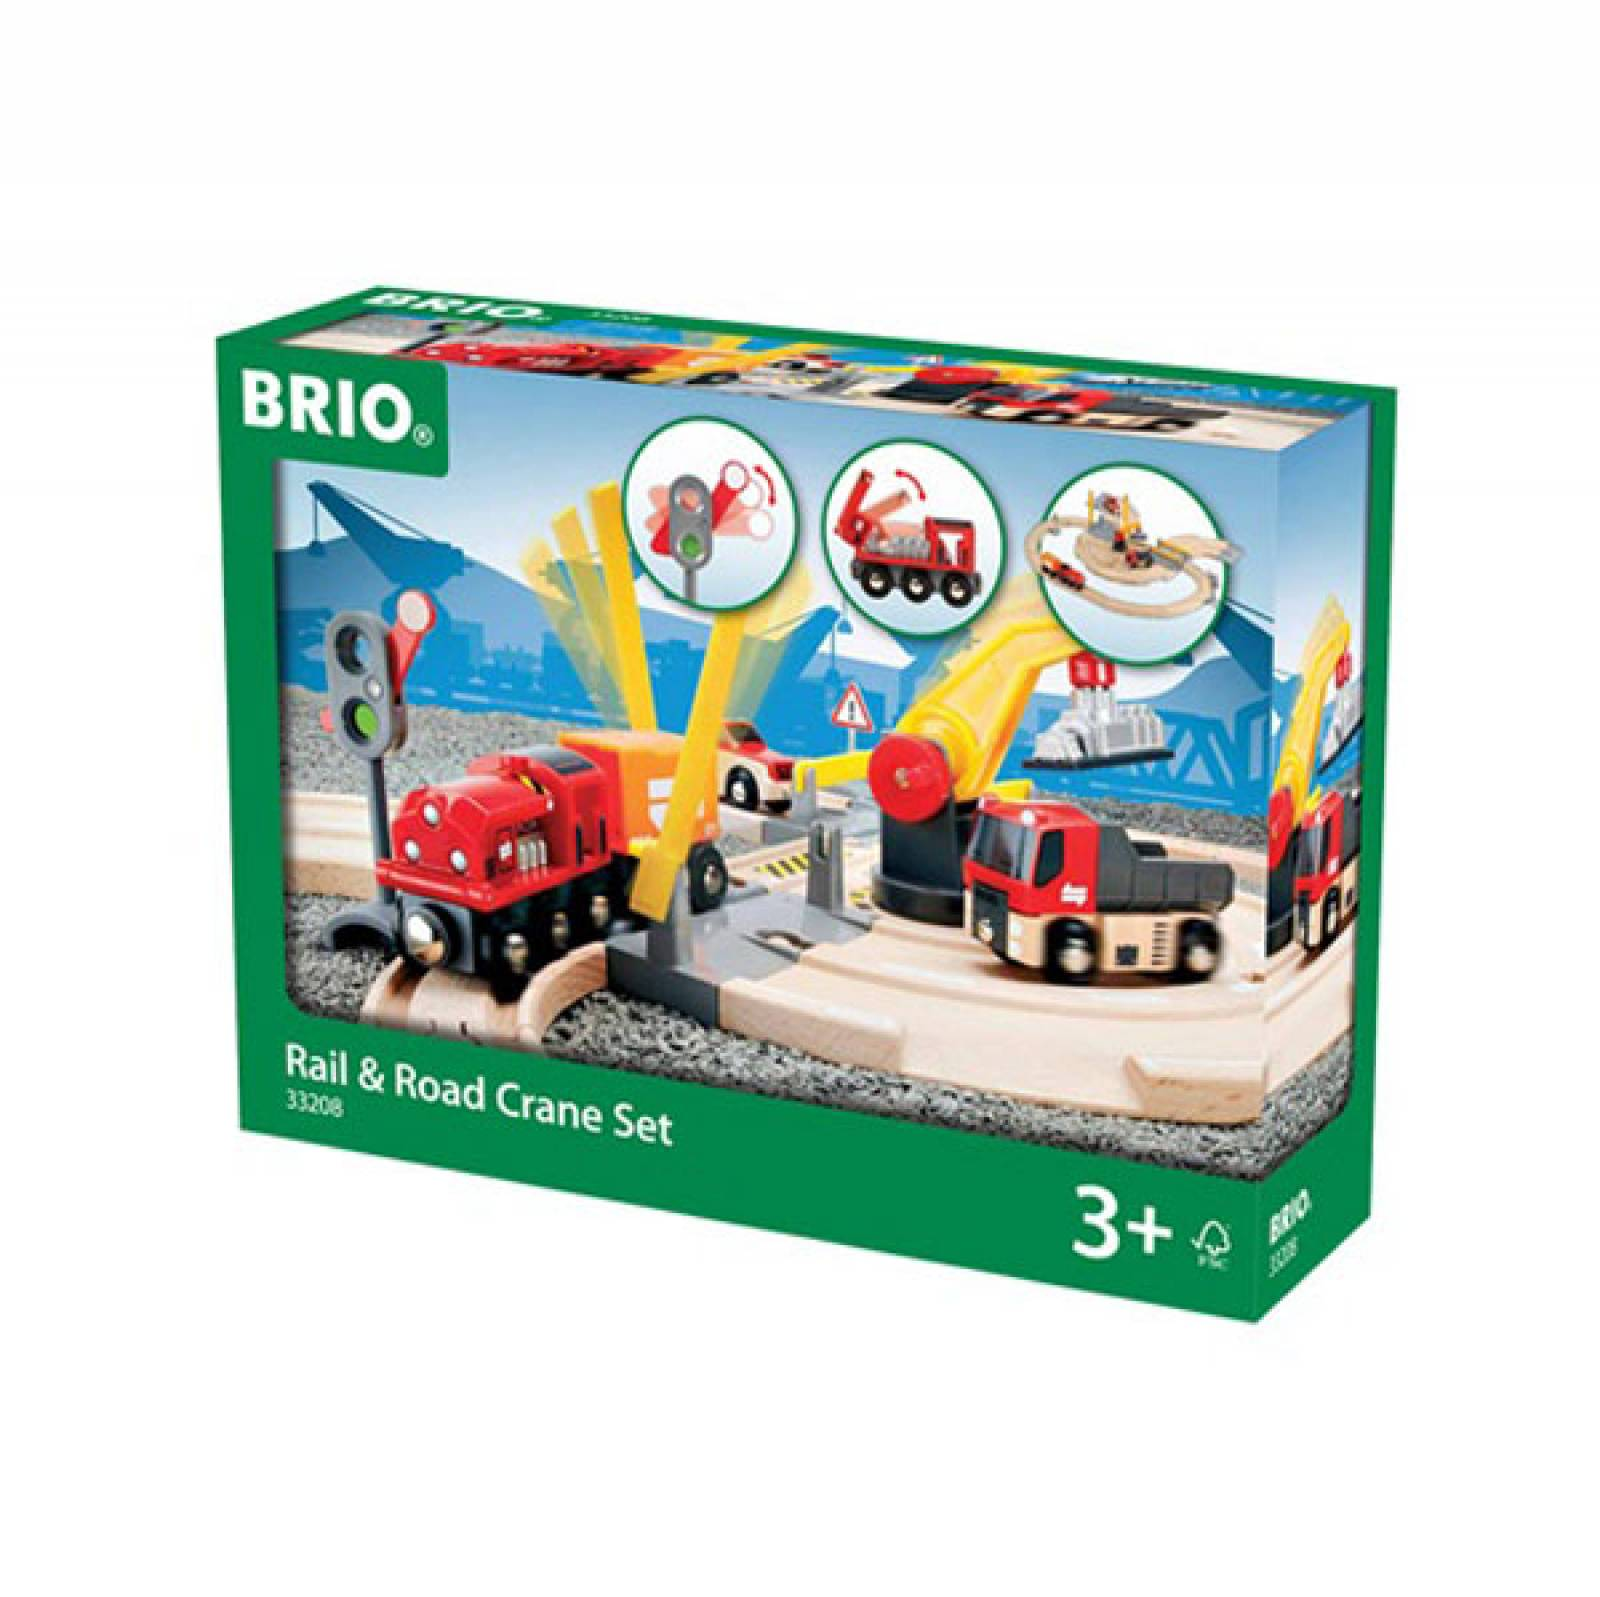 Rail & Road Crane Set BRIO Wooden Railway Age 3+ thumbnails